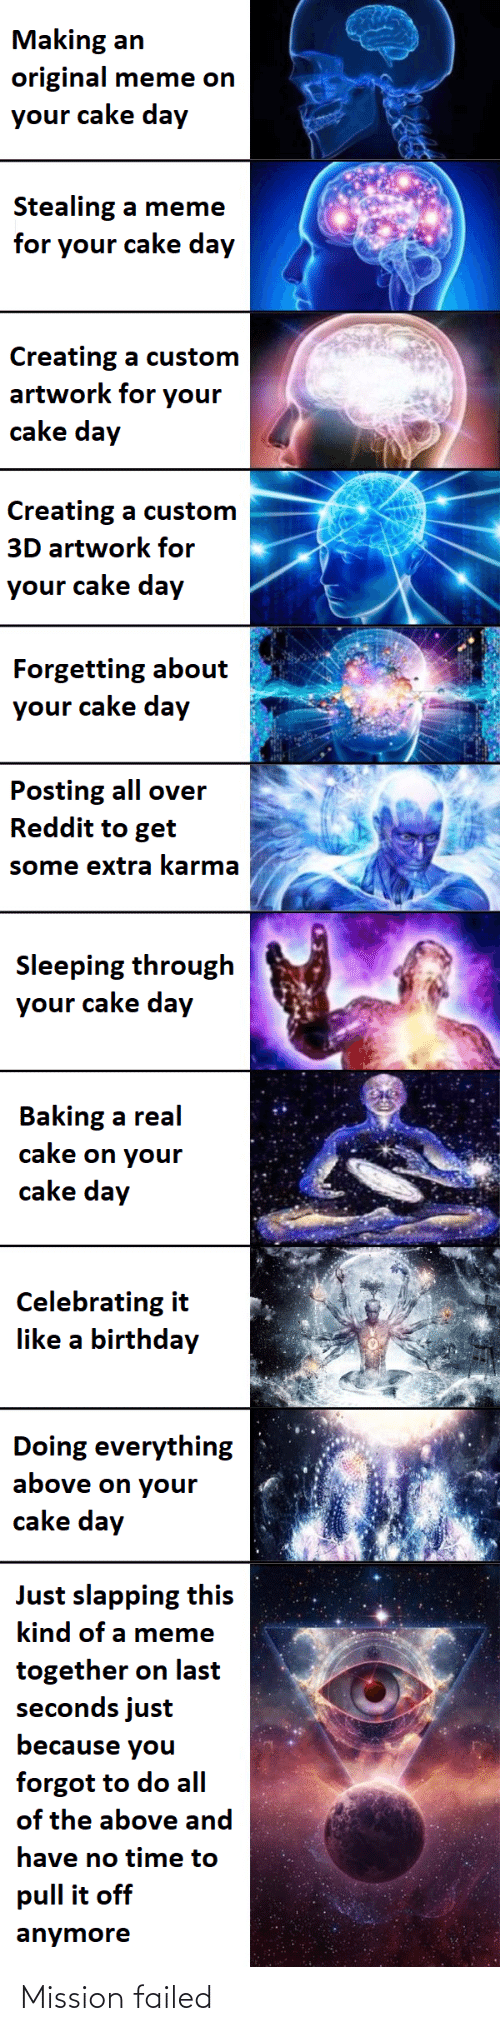 Birthday, Meme, and Reddit: Making an  original meme on  your cake day  Stealing a meme  for your cake day  Creating a custom  artwork for your  cake day  Creating a custom  3D artwork for  your cake day  Forgetting about  your cake day  Posting all over  Reddit to get  some extra karma  Sleeping through  your cake day  Baking a real  cake on your  cake day  Celebrating it  like a birthday  Doing everything  above on your  cake day  Just slapping this  kind of a meme  together on last  seconds just  because you  forgot to do all  of the above and  have no time to  pull it off  anymore Mission failed